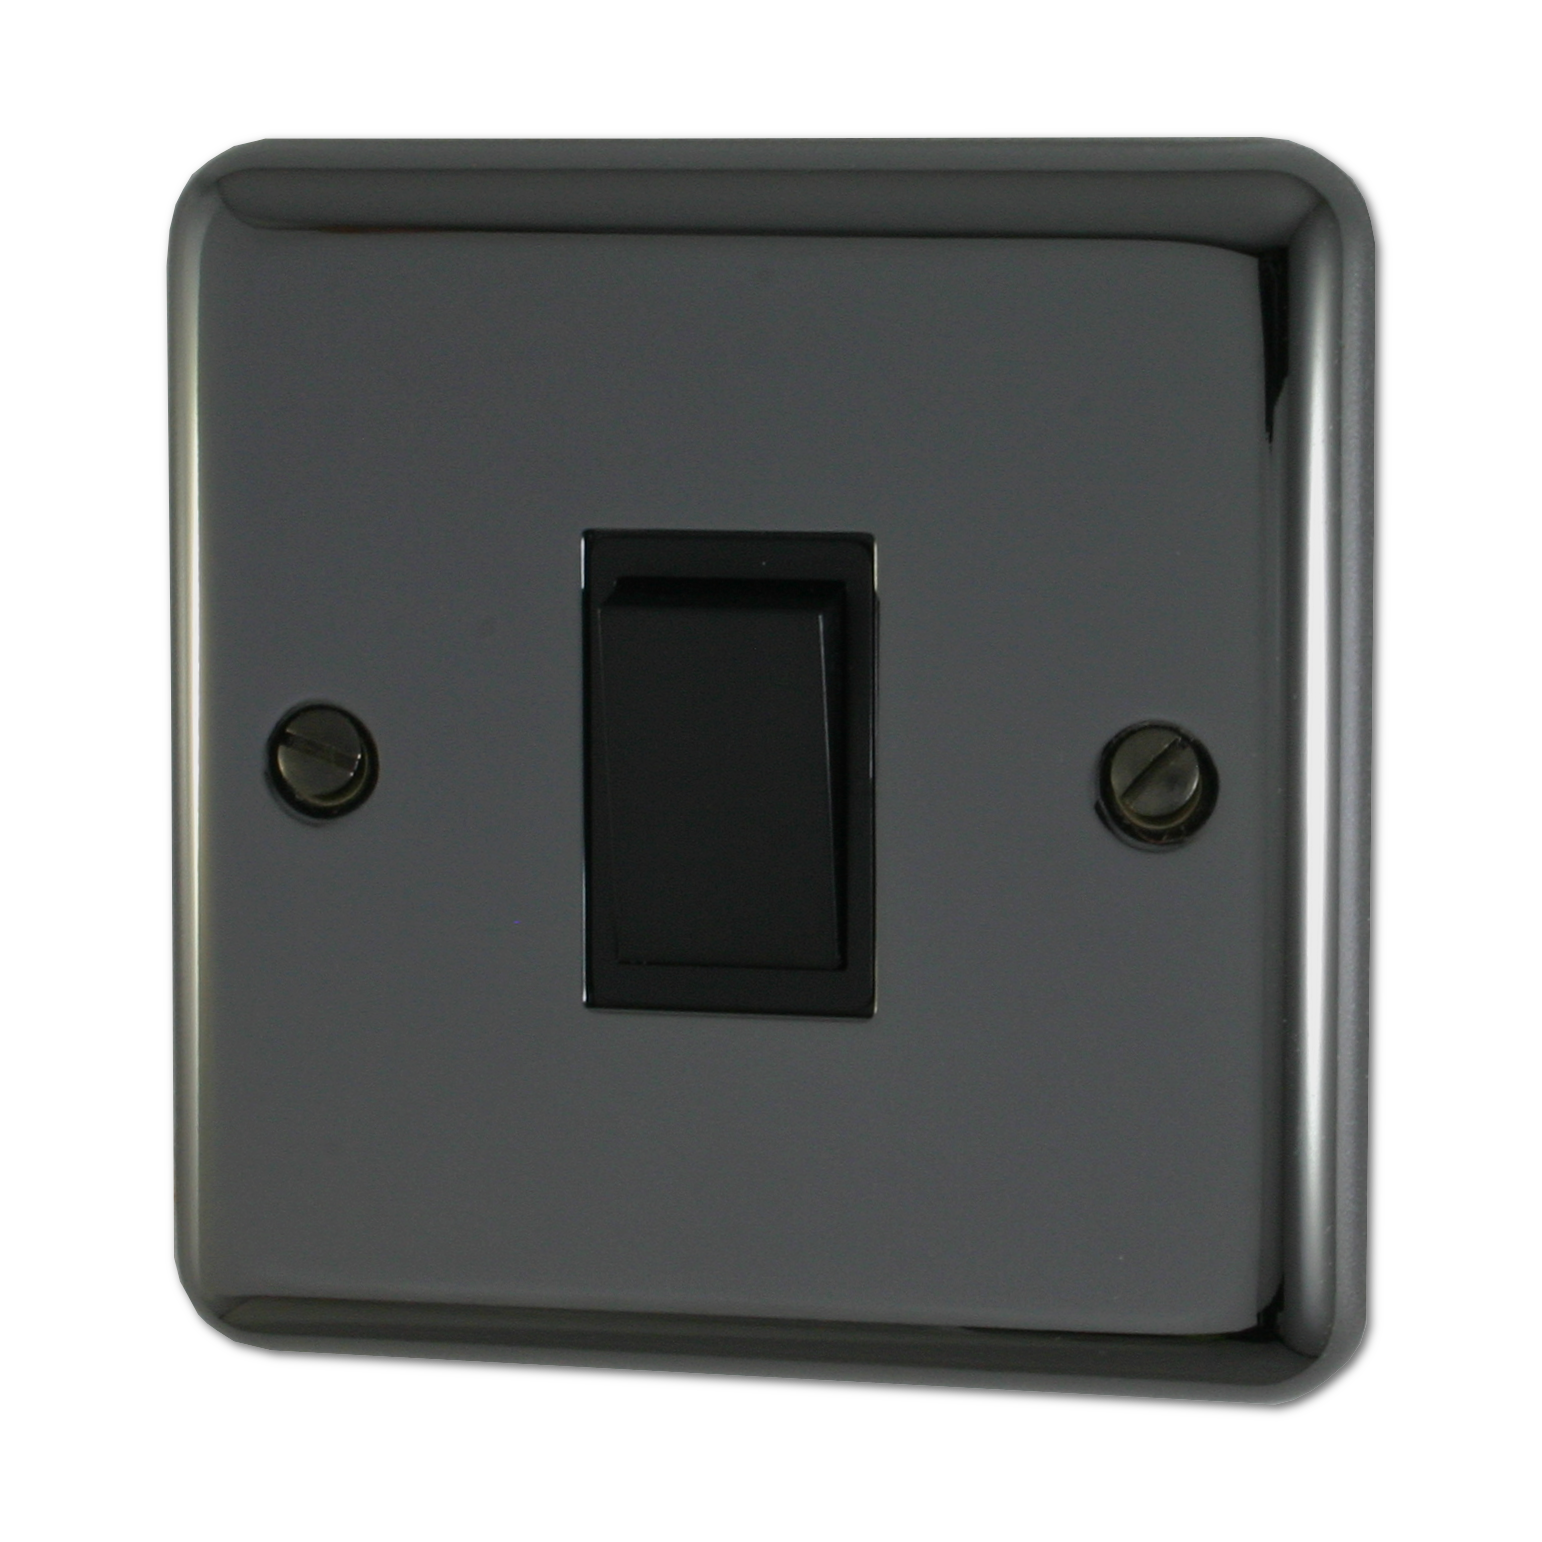 Light Switch Transparent & PNG Clipart Free Download - YWD on light switch blue, light switch terminals, light dimmer switch, light switch insulation, light switch connections, light switch repair, light switch operation, light switch paint, light switch socket, light switches, light switch breakers, light switch grounding, light switch three, light switch painting, light switch parts, light switch interior, light bulb, light switch installation, light switch lamps, light switch electrical,